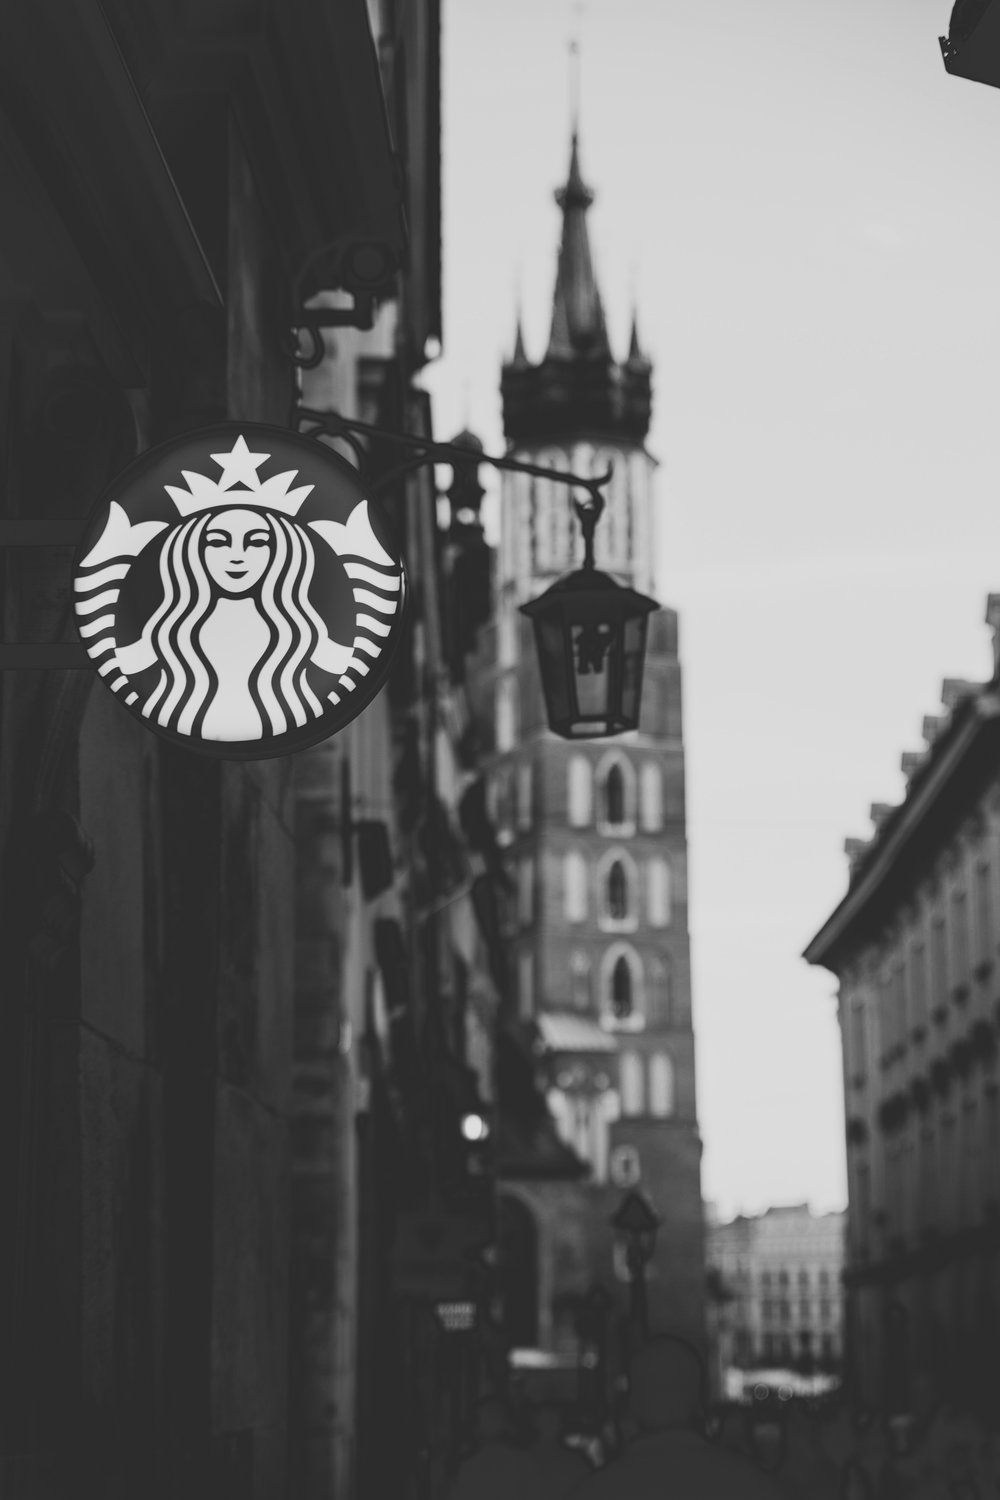 A Starbucks sign hangs in front of a city street